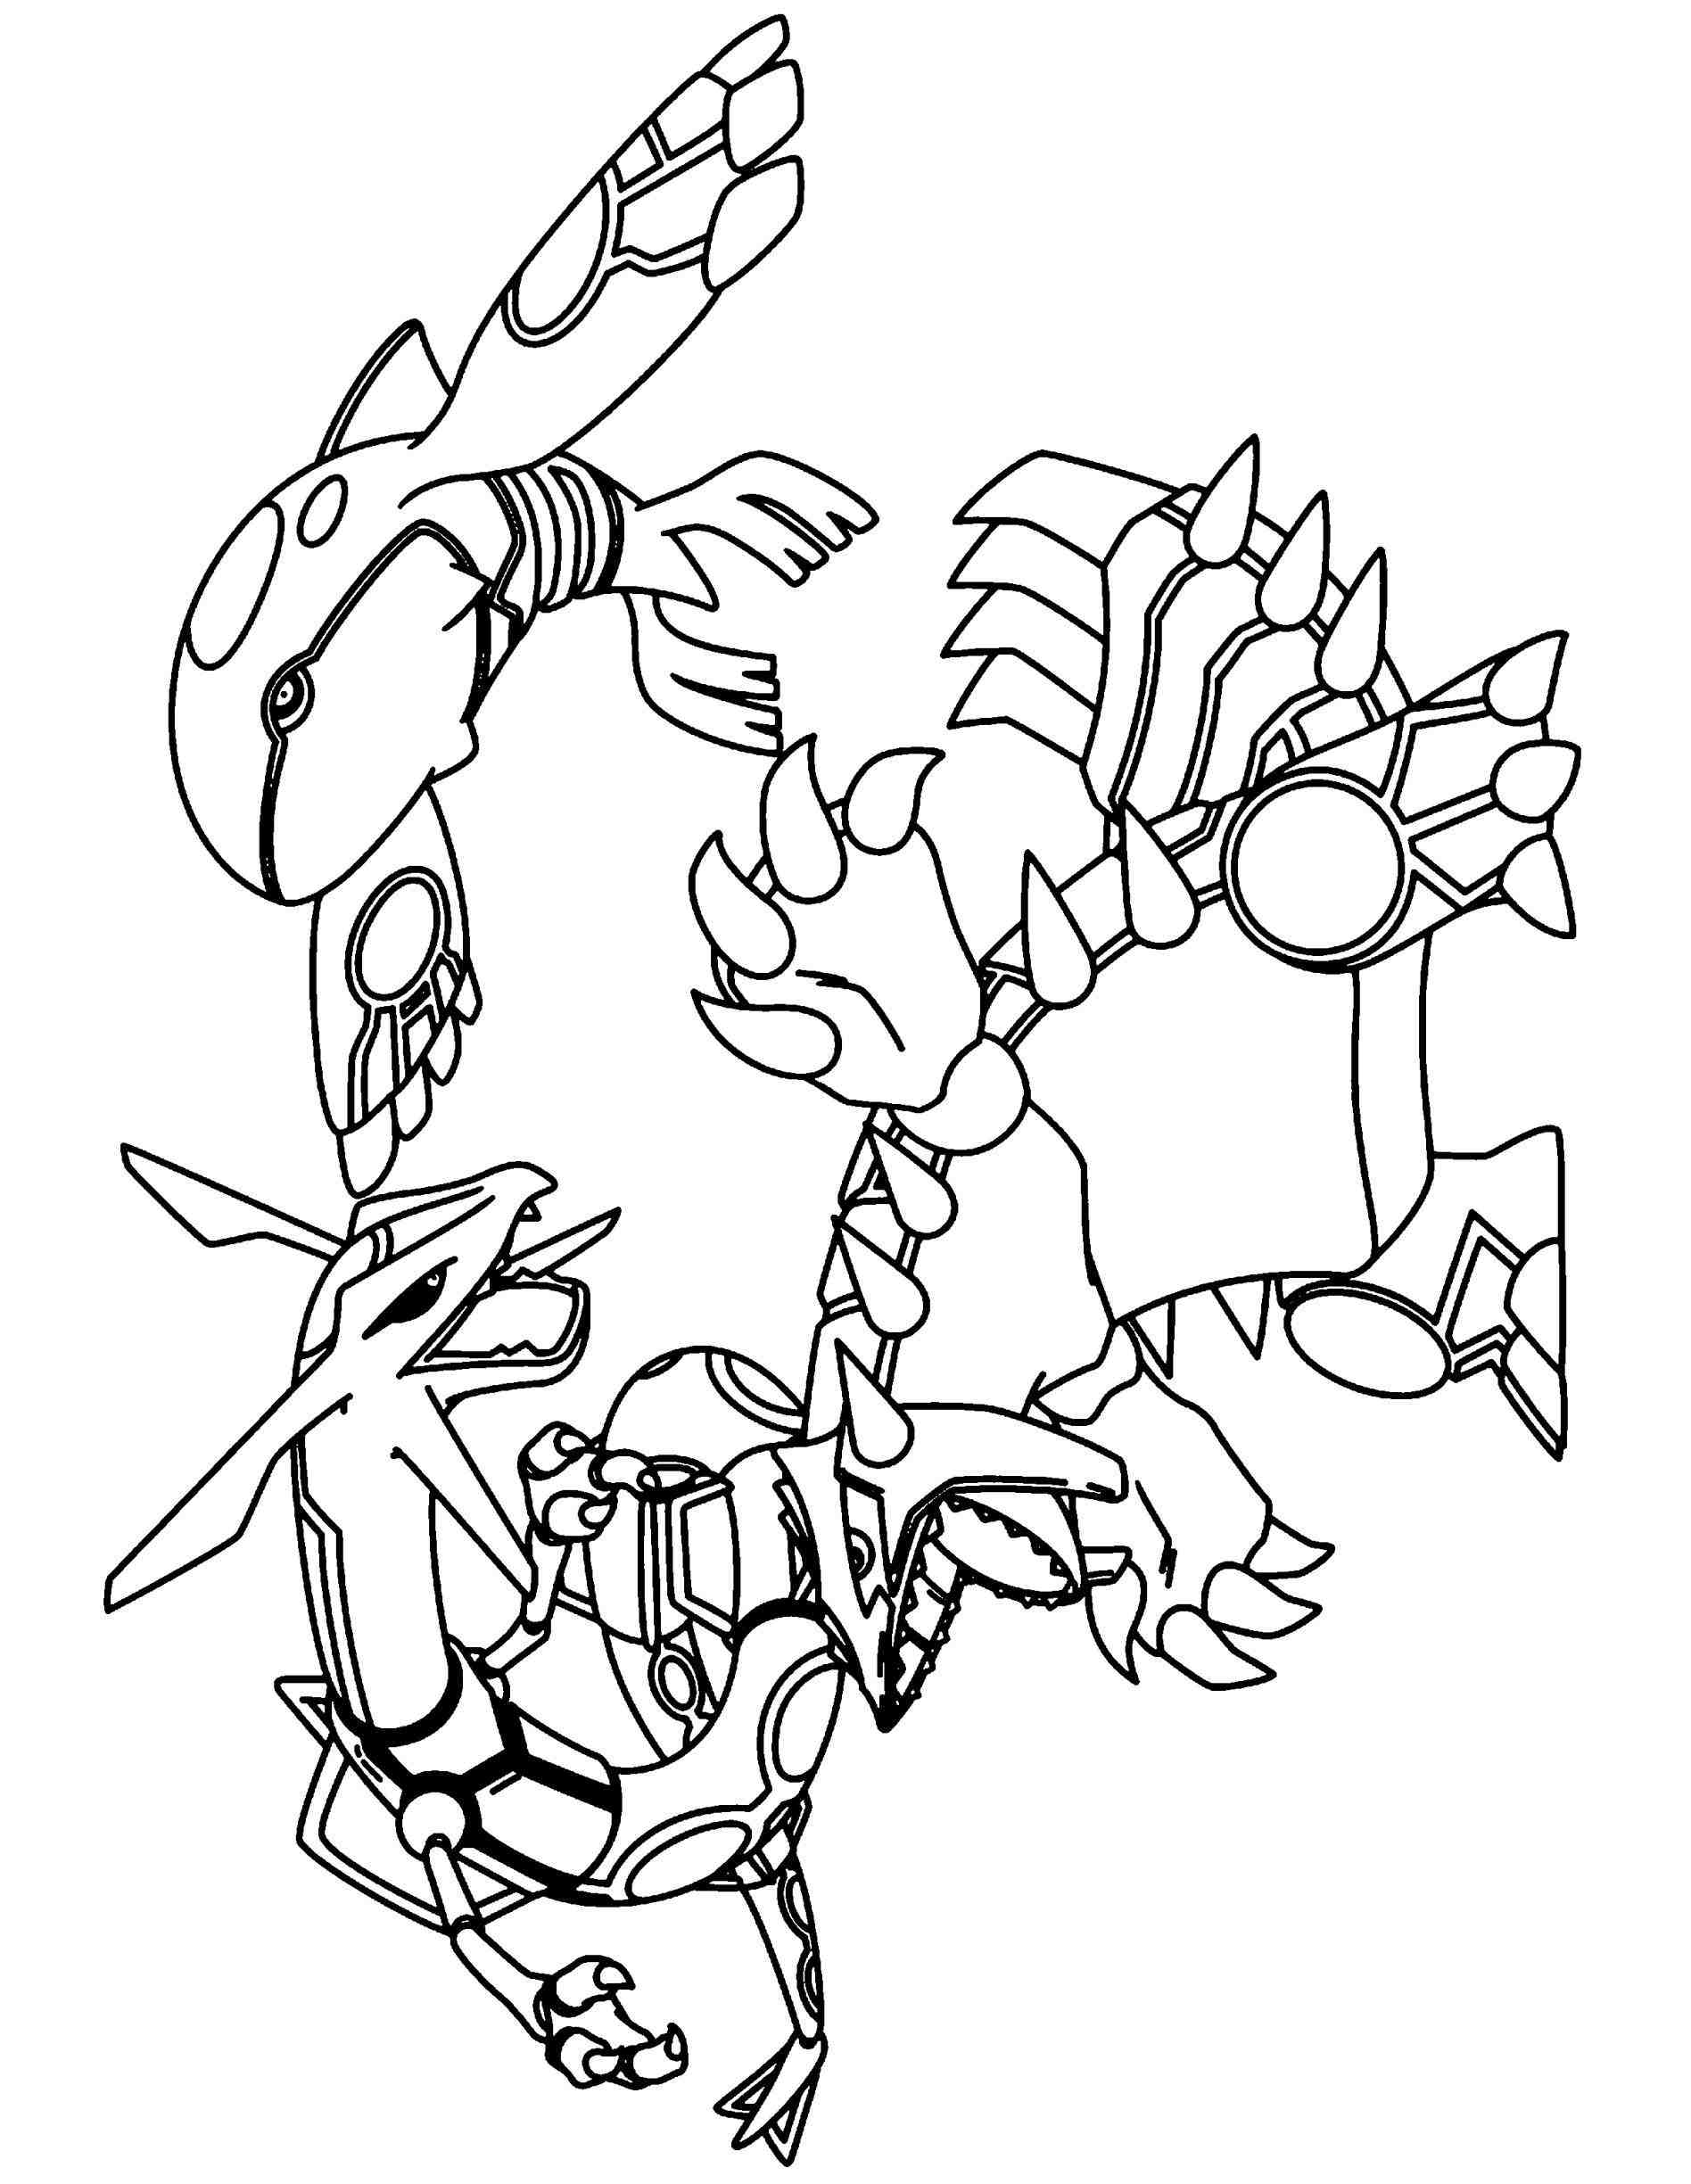 primal groudon coloring pages - photo#13